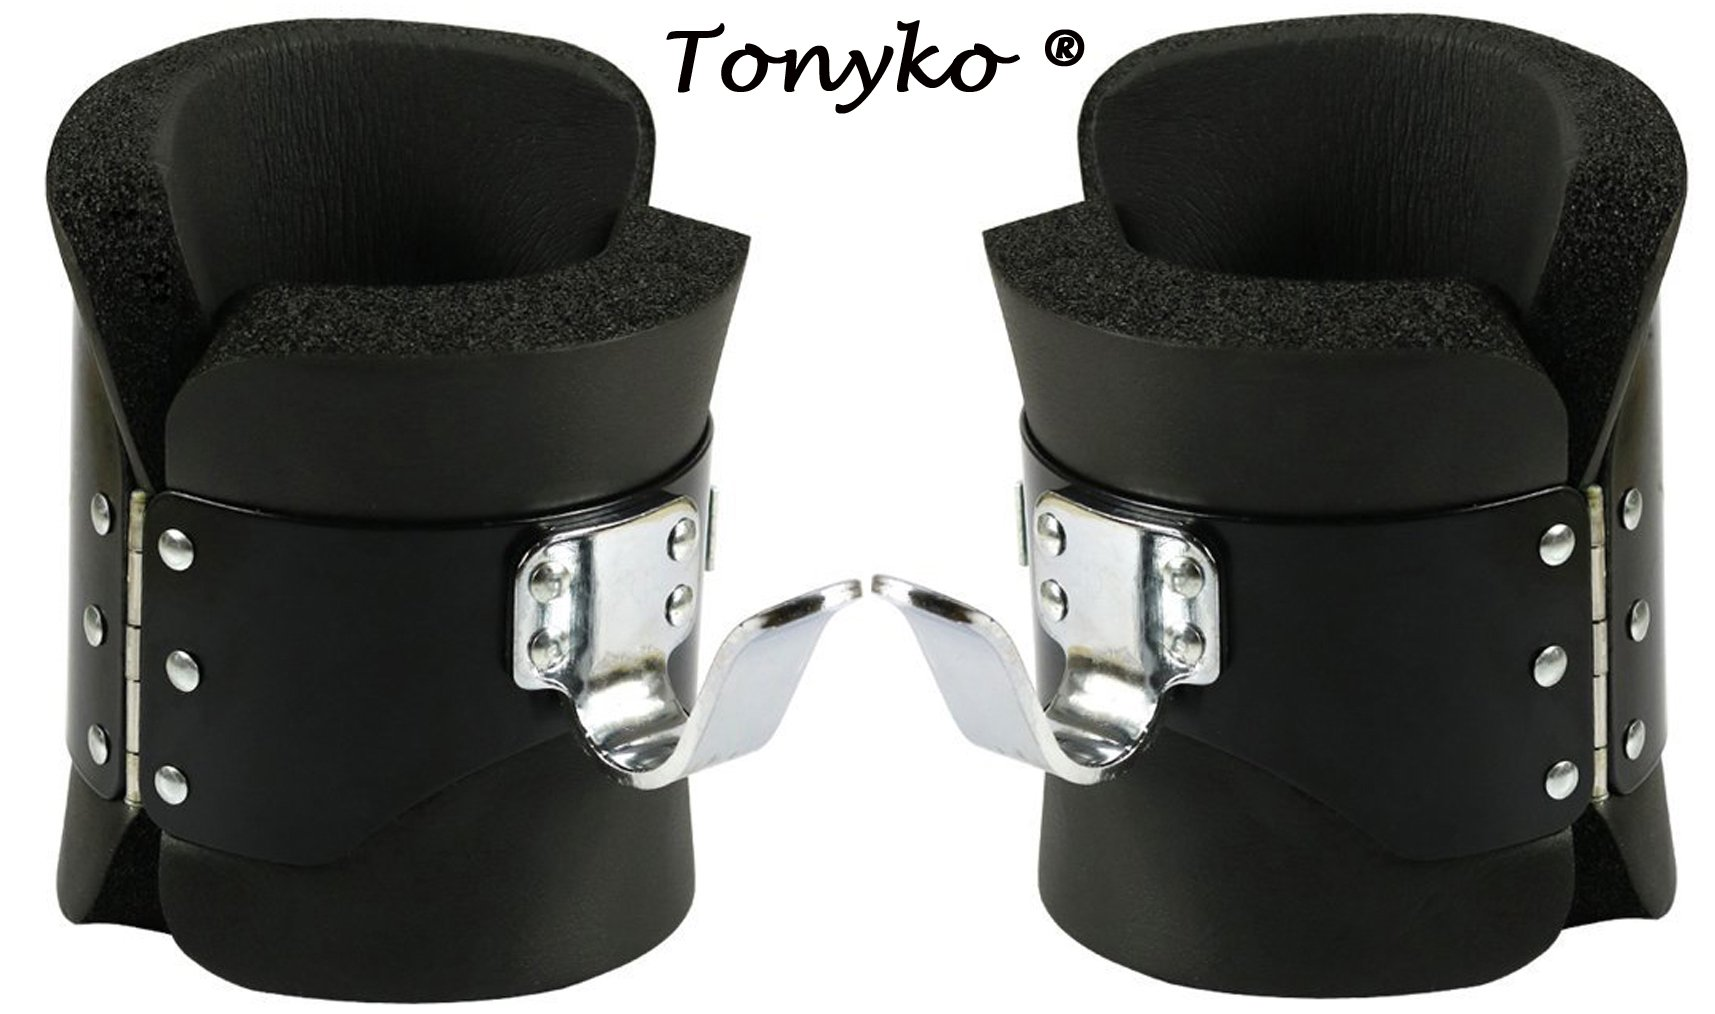 Tonyko Inversion Gravity Boots by Tonyko